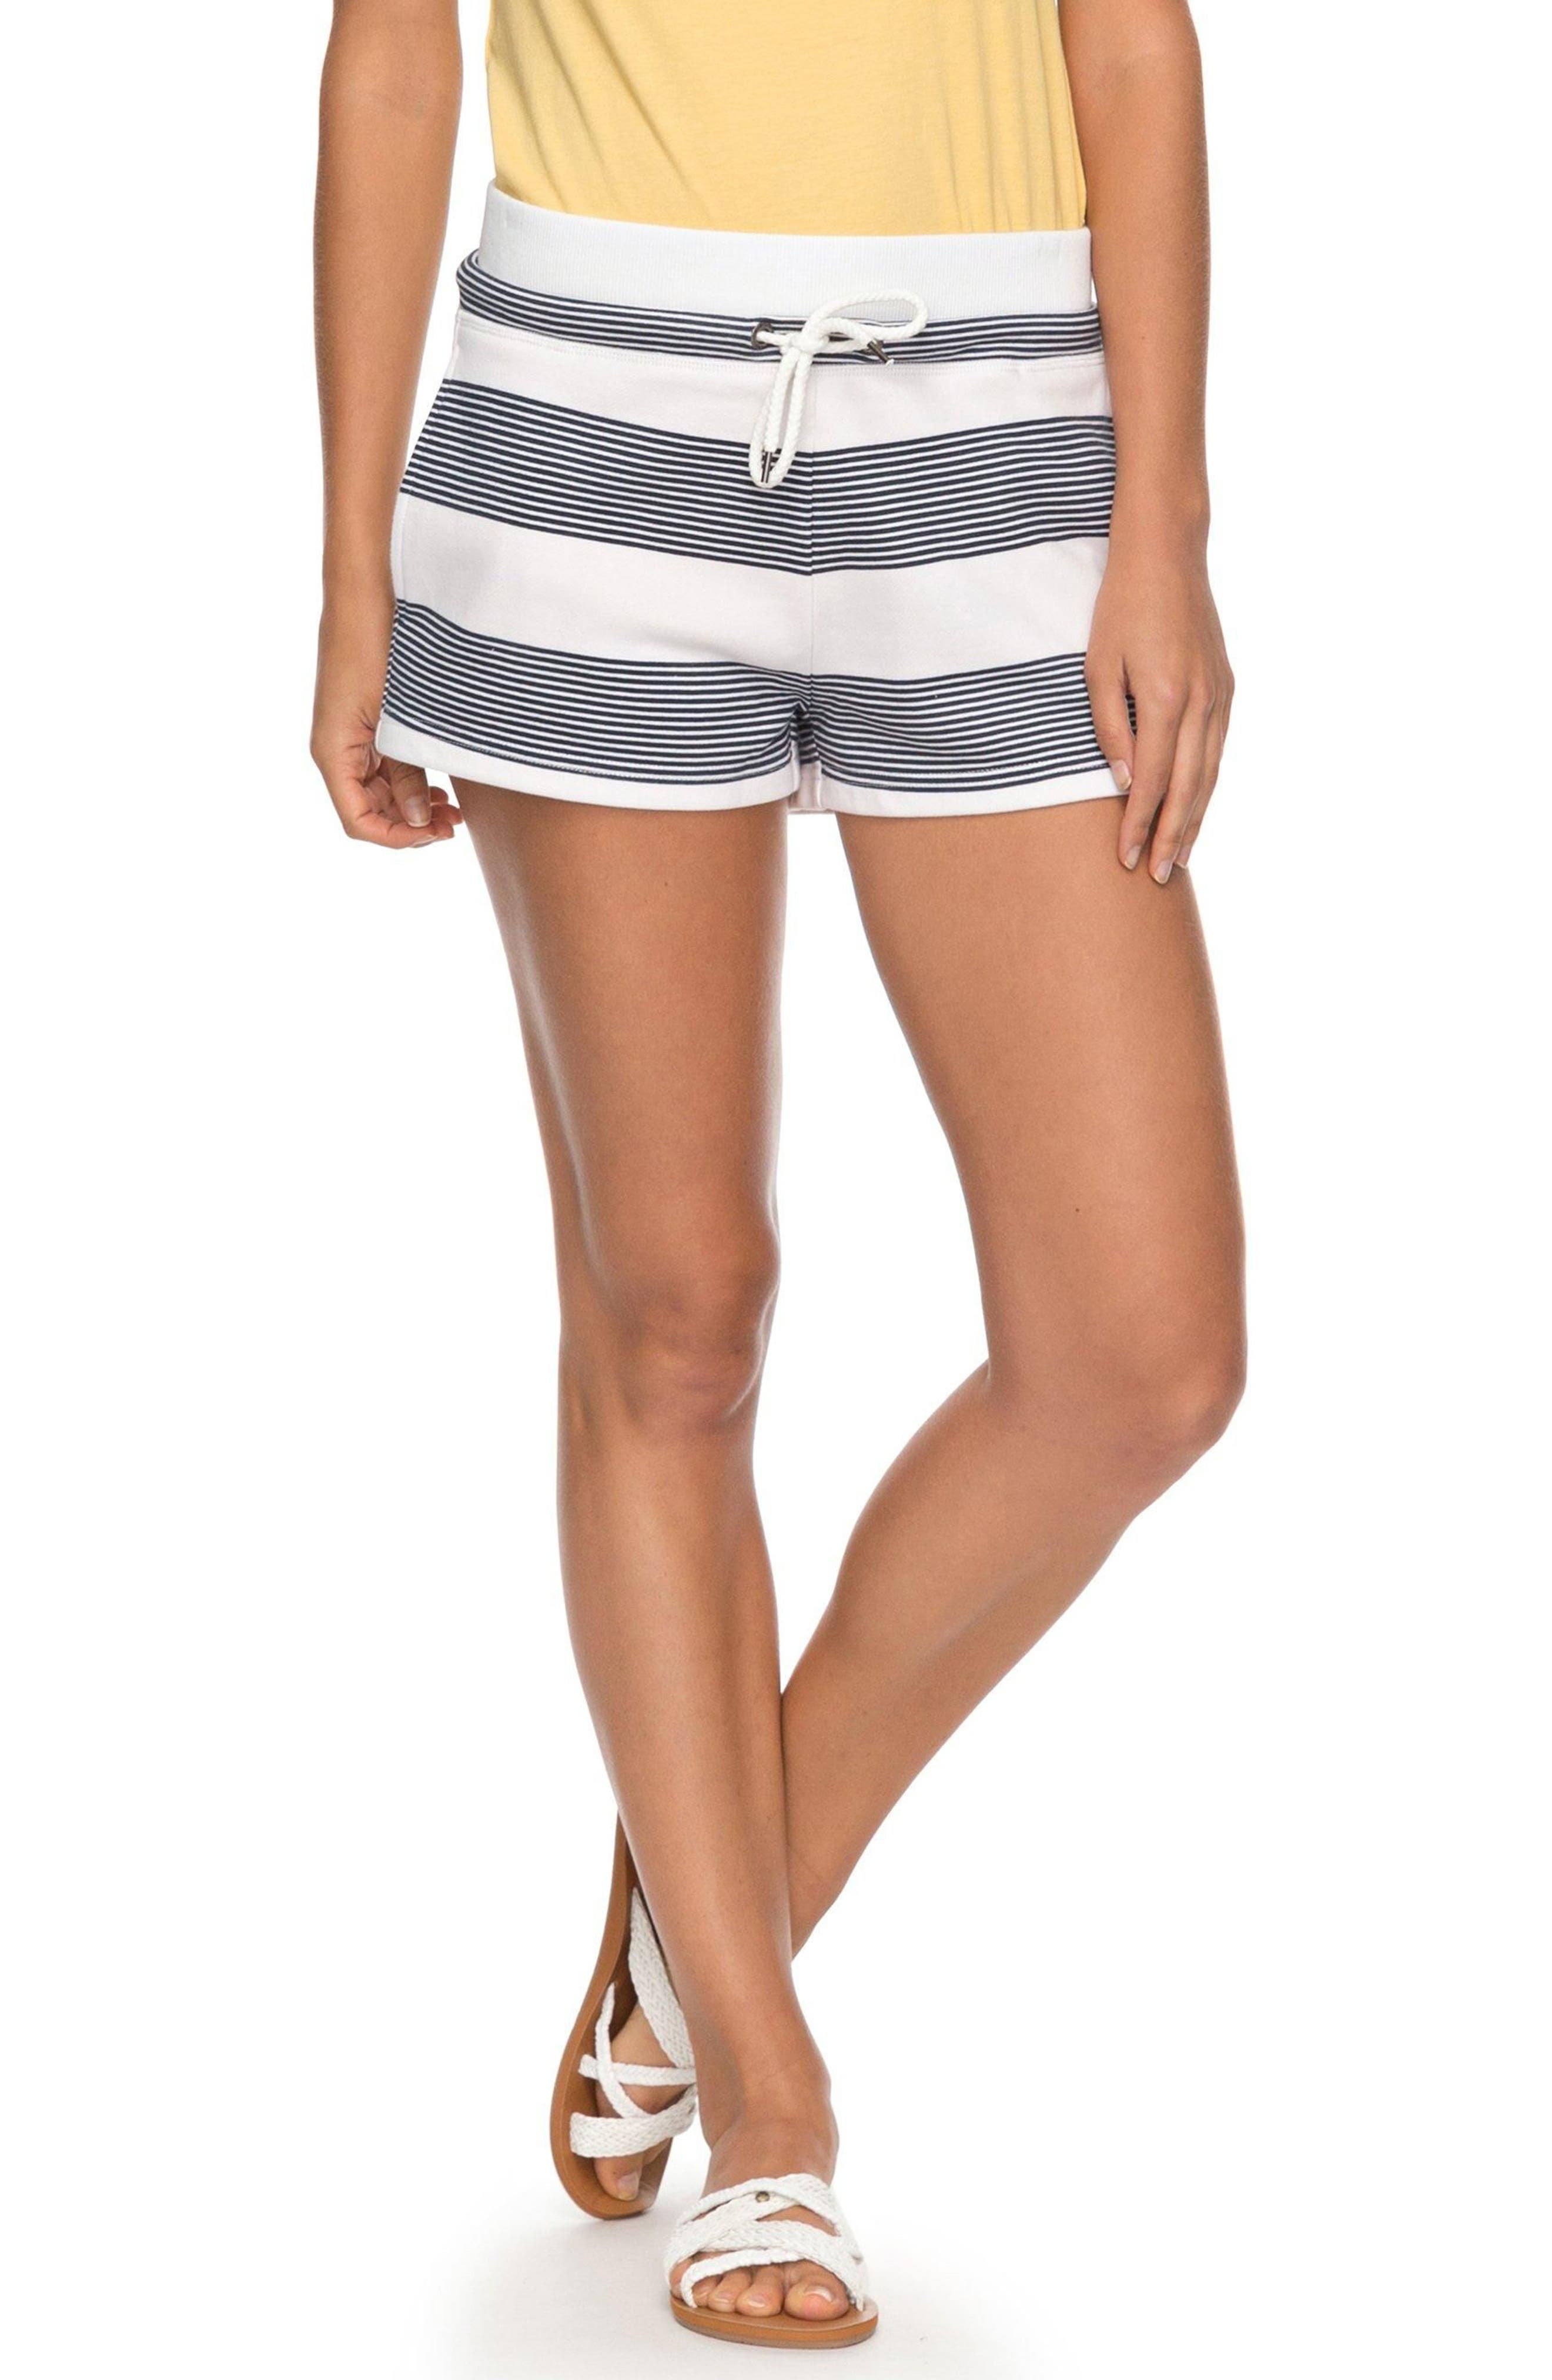 Away from Today Stripe Shorts,                             Main thumbnail 1, color,                             MARSHMALLOW DRESS BLUE DOCKER